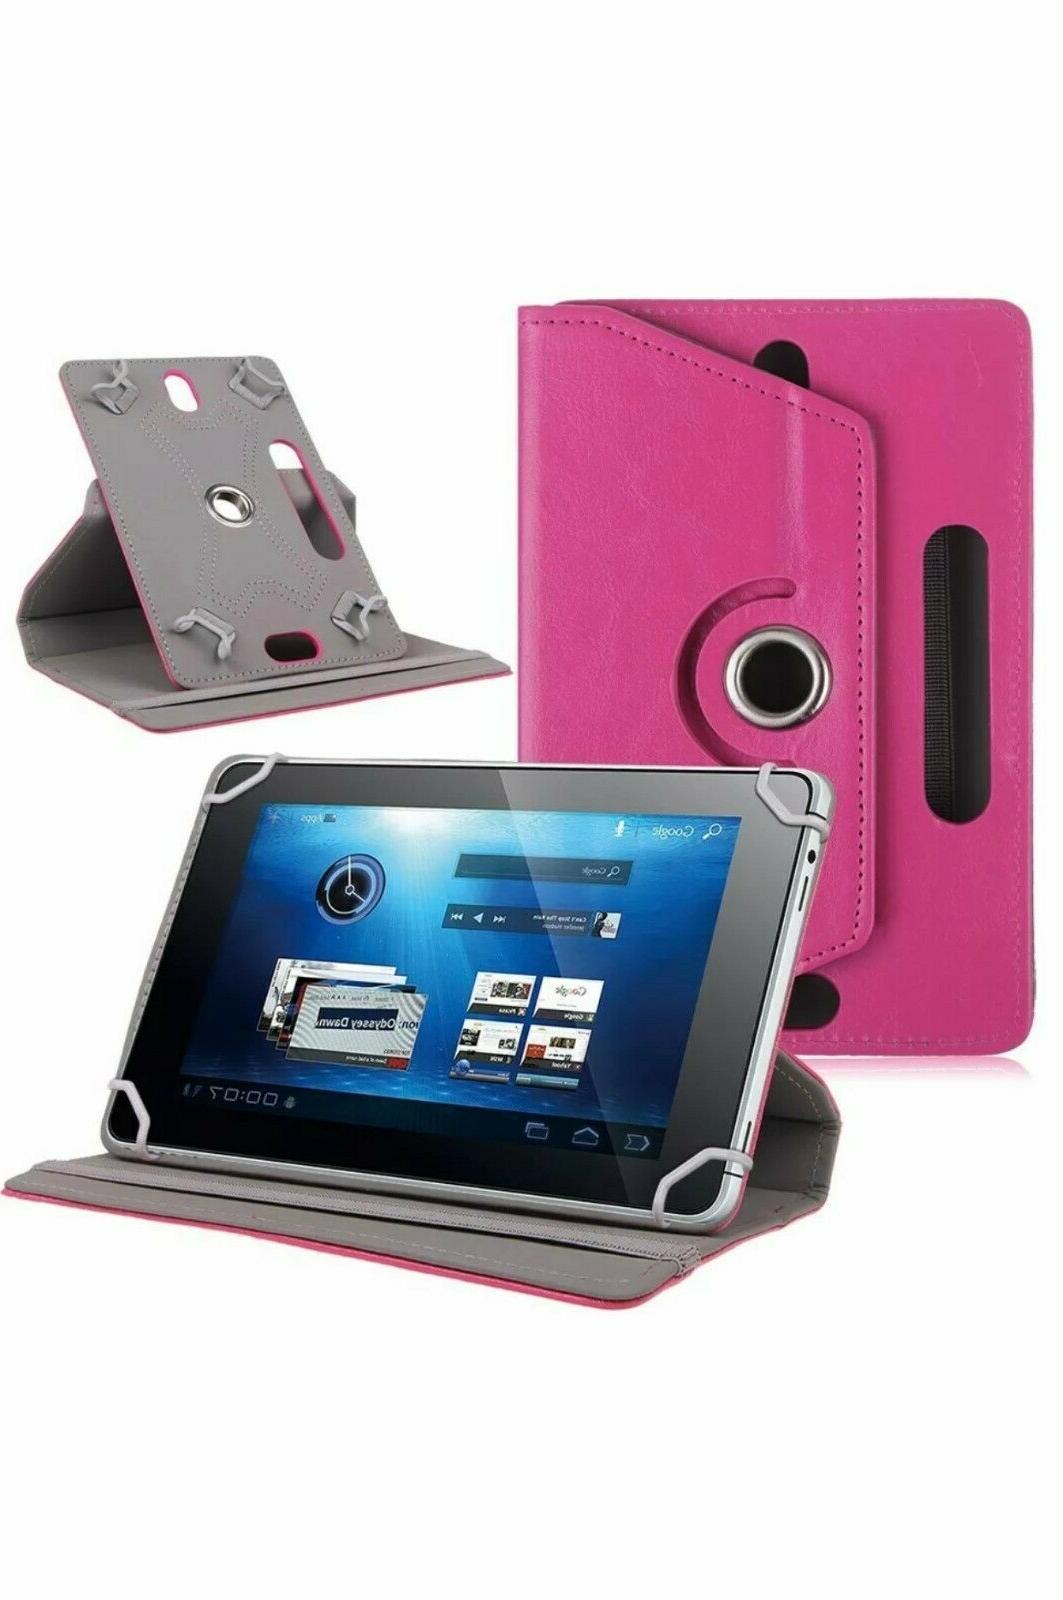 UNIVERSAL Protective Stand for Android Tablet LG